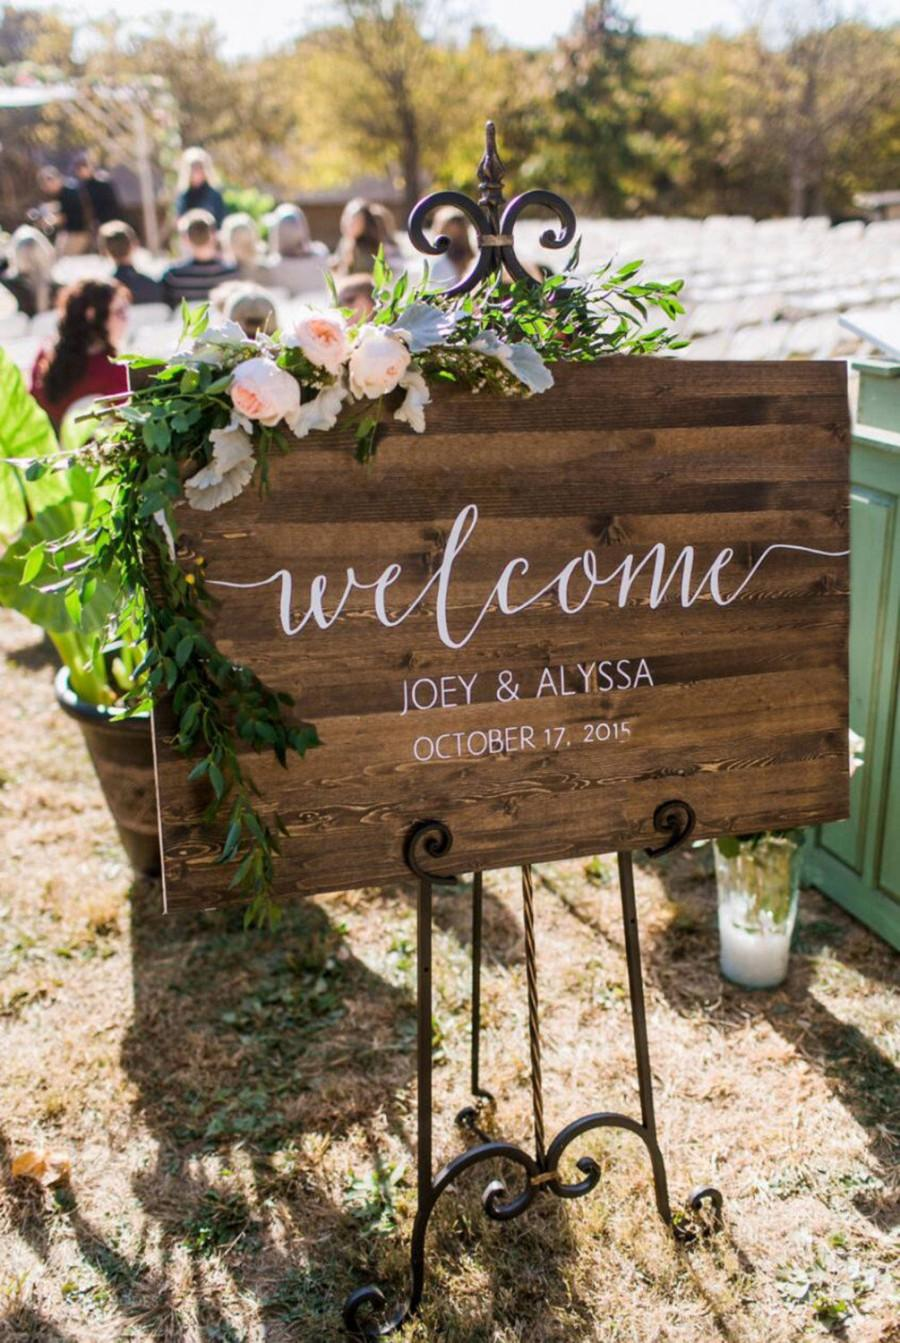 Wedding - Wedding Welcome Sign - Rustic Wood Wedding Sign - Sophia Collection